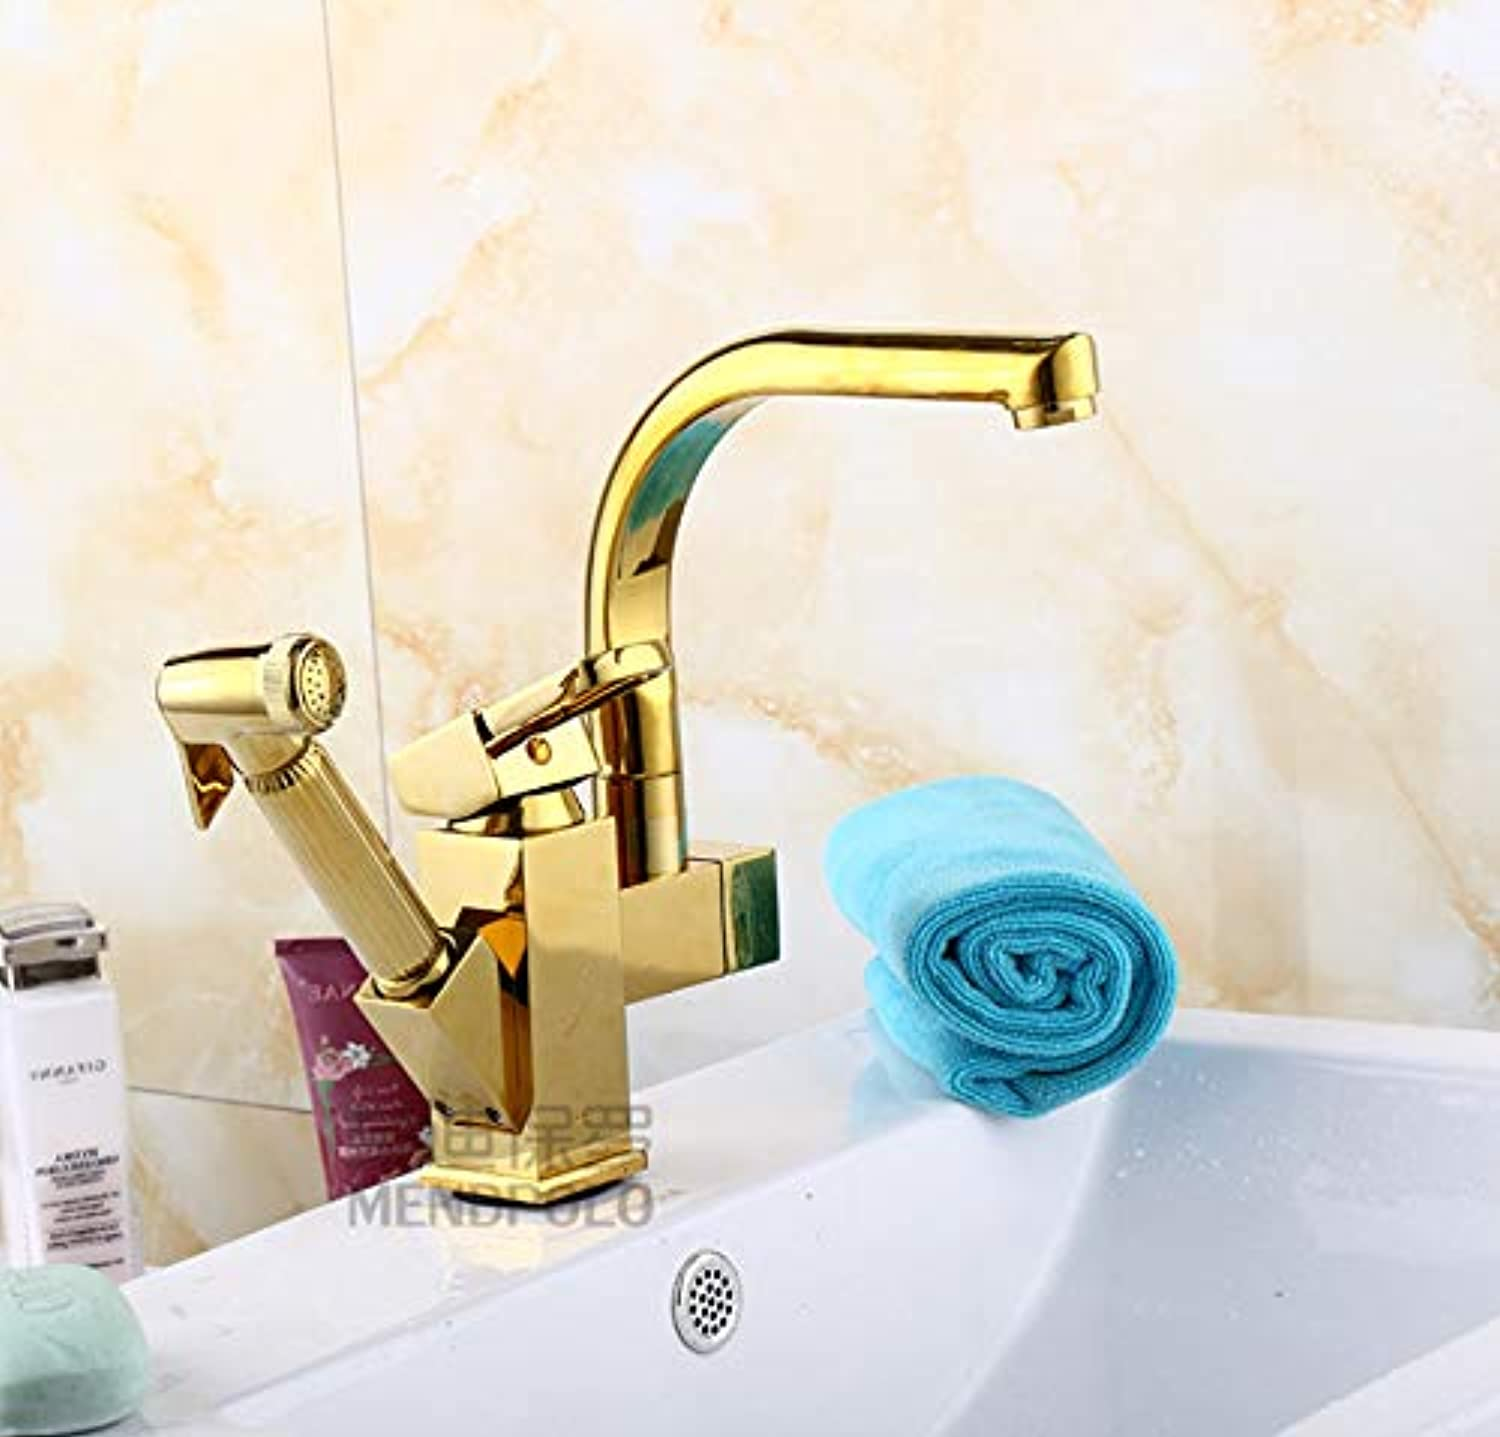 ROKTONG Taps Taps Taps All-Copper Square Single-Hole Pull-Out Basin Faucet Faucet Pull-Up Telescopic Hot And Cold Faucet